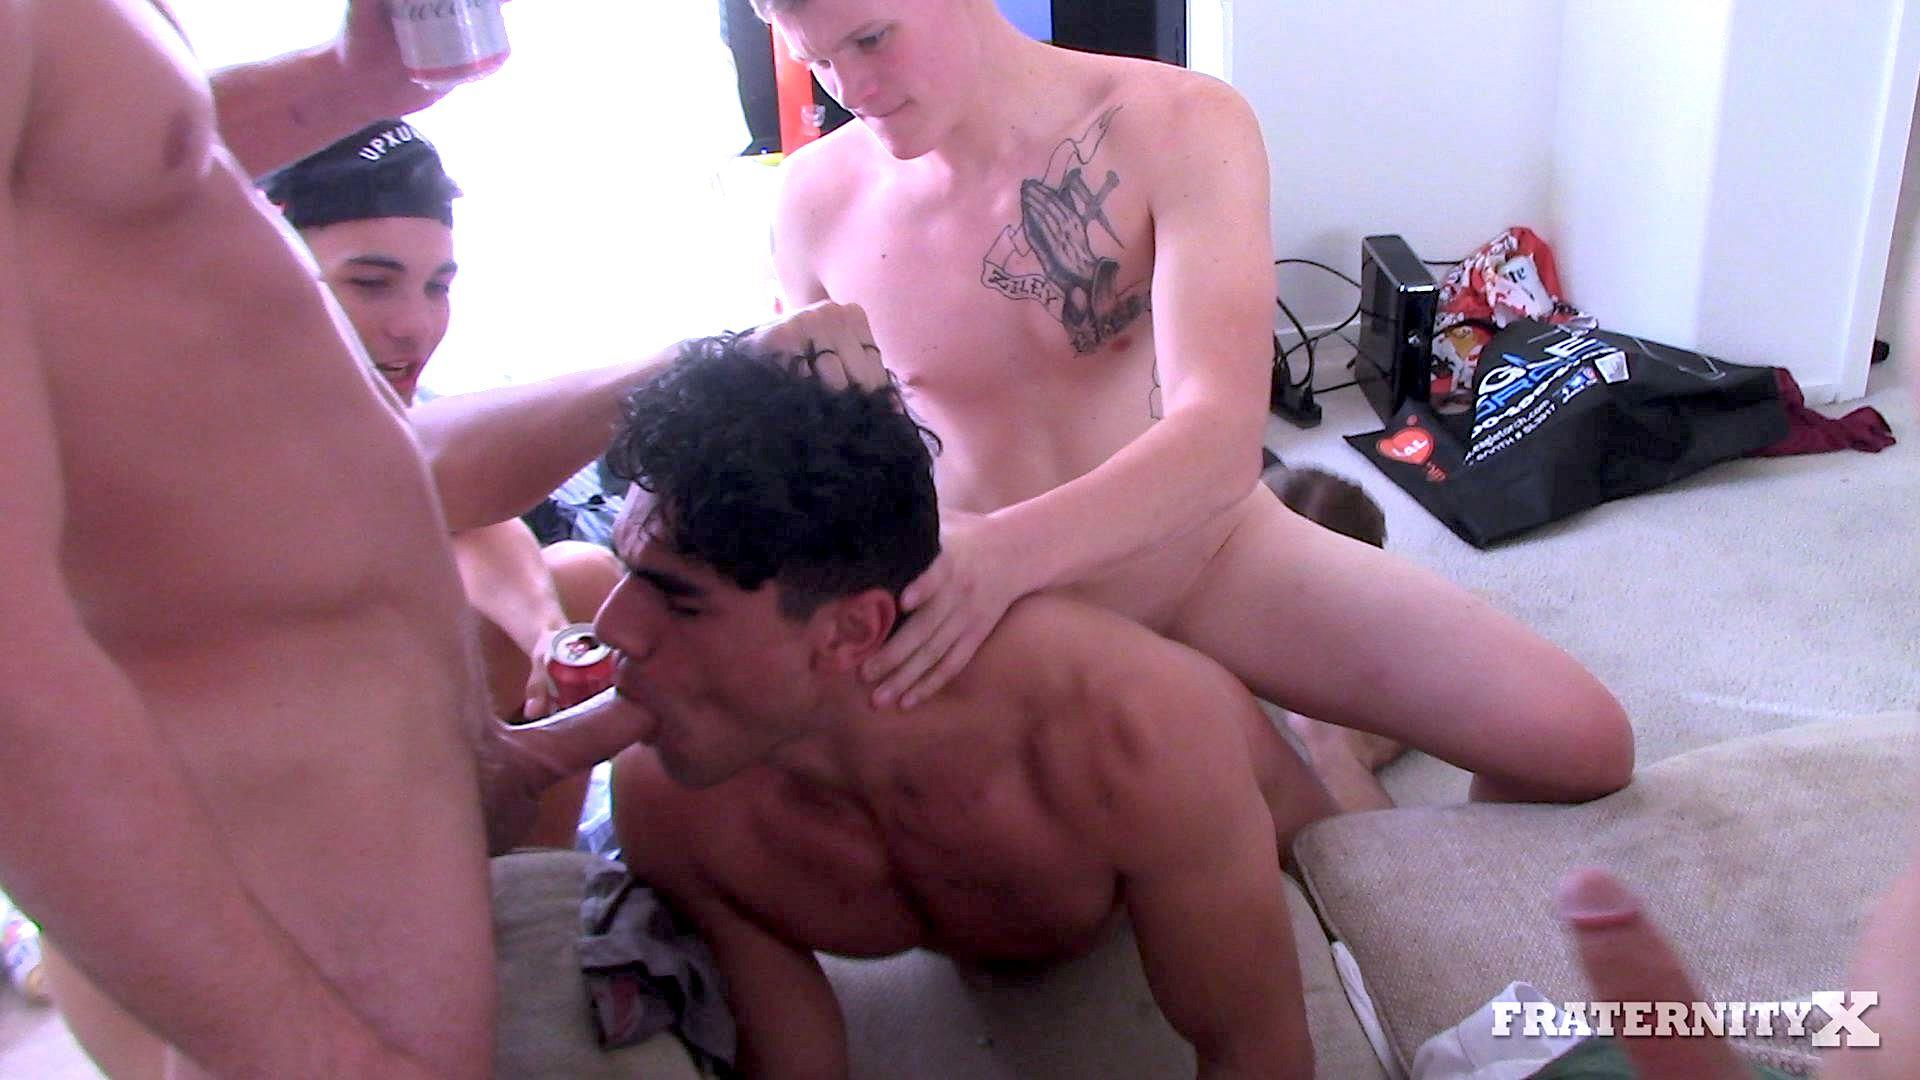 Fraternity-X-Naked-Frat-Guys-With-Big-Dicks-Fucking-Bareback-In-The-Frat-house-07 Drunk and High Frat Boy Takes Four Raw Dicks Up The Ass